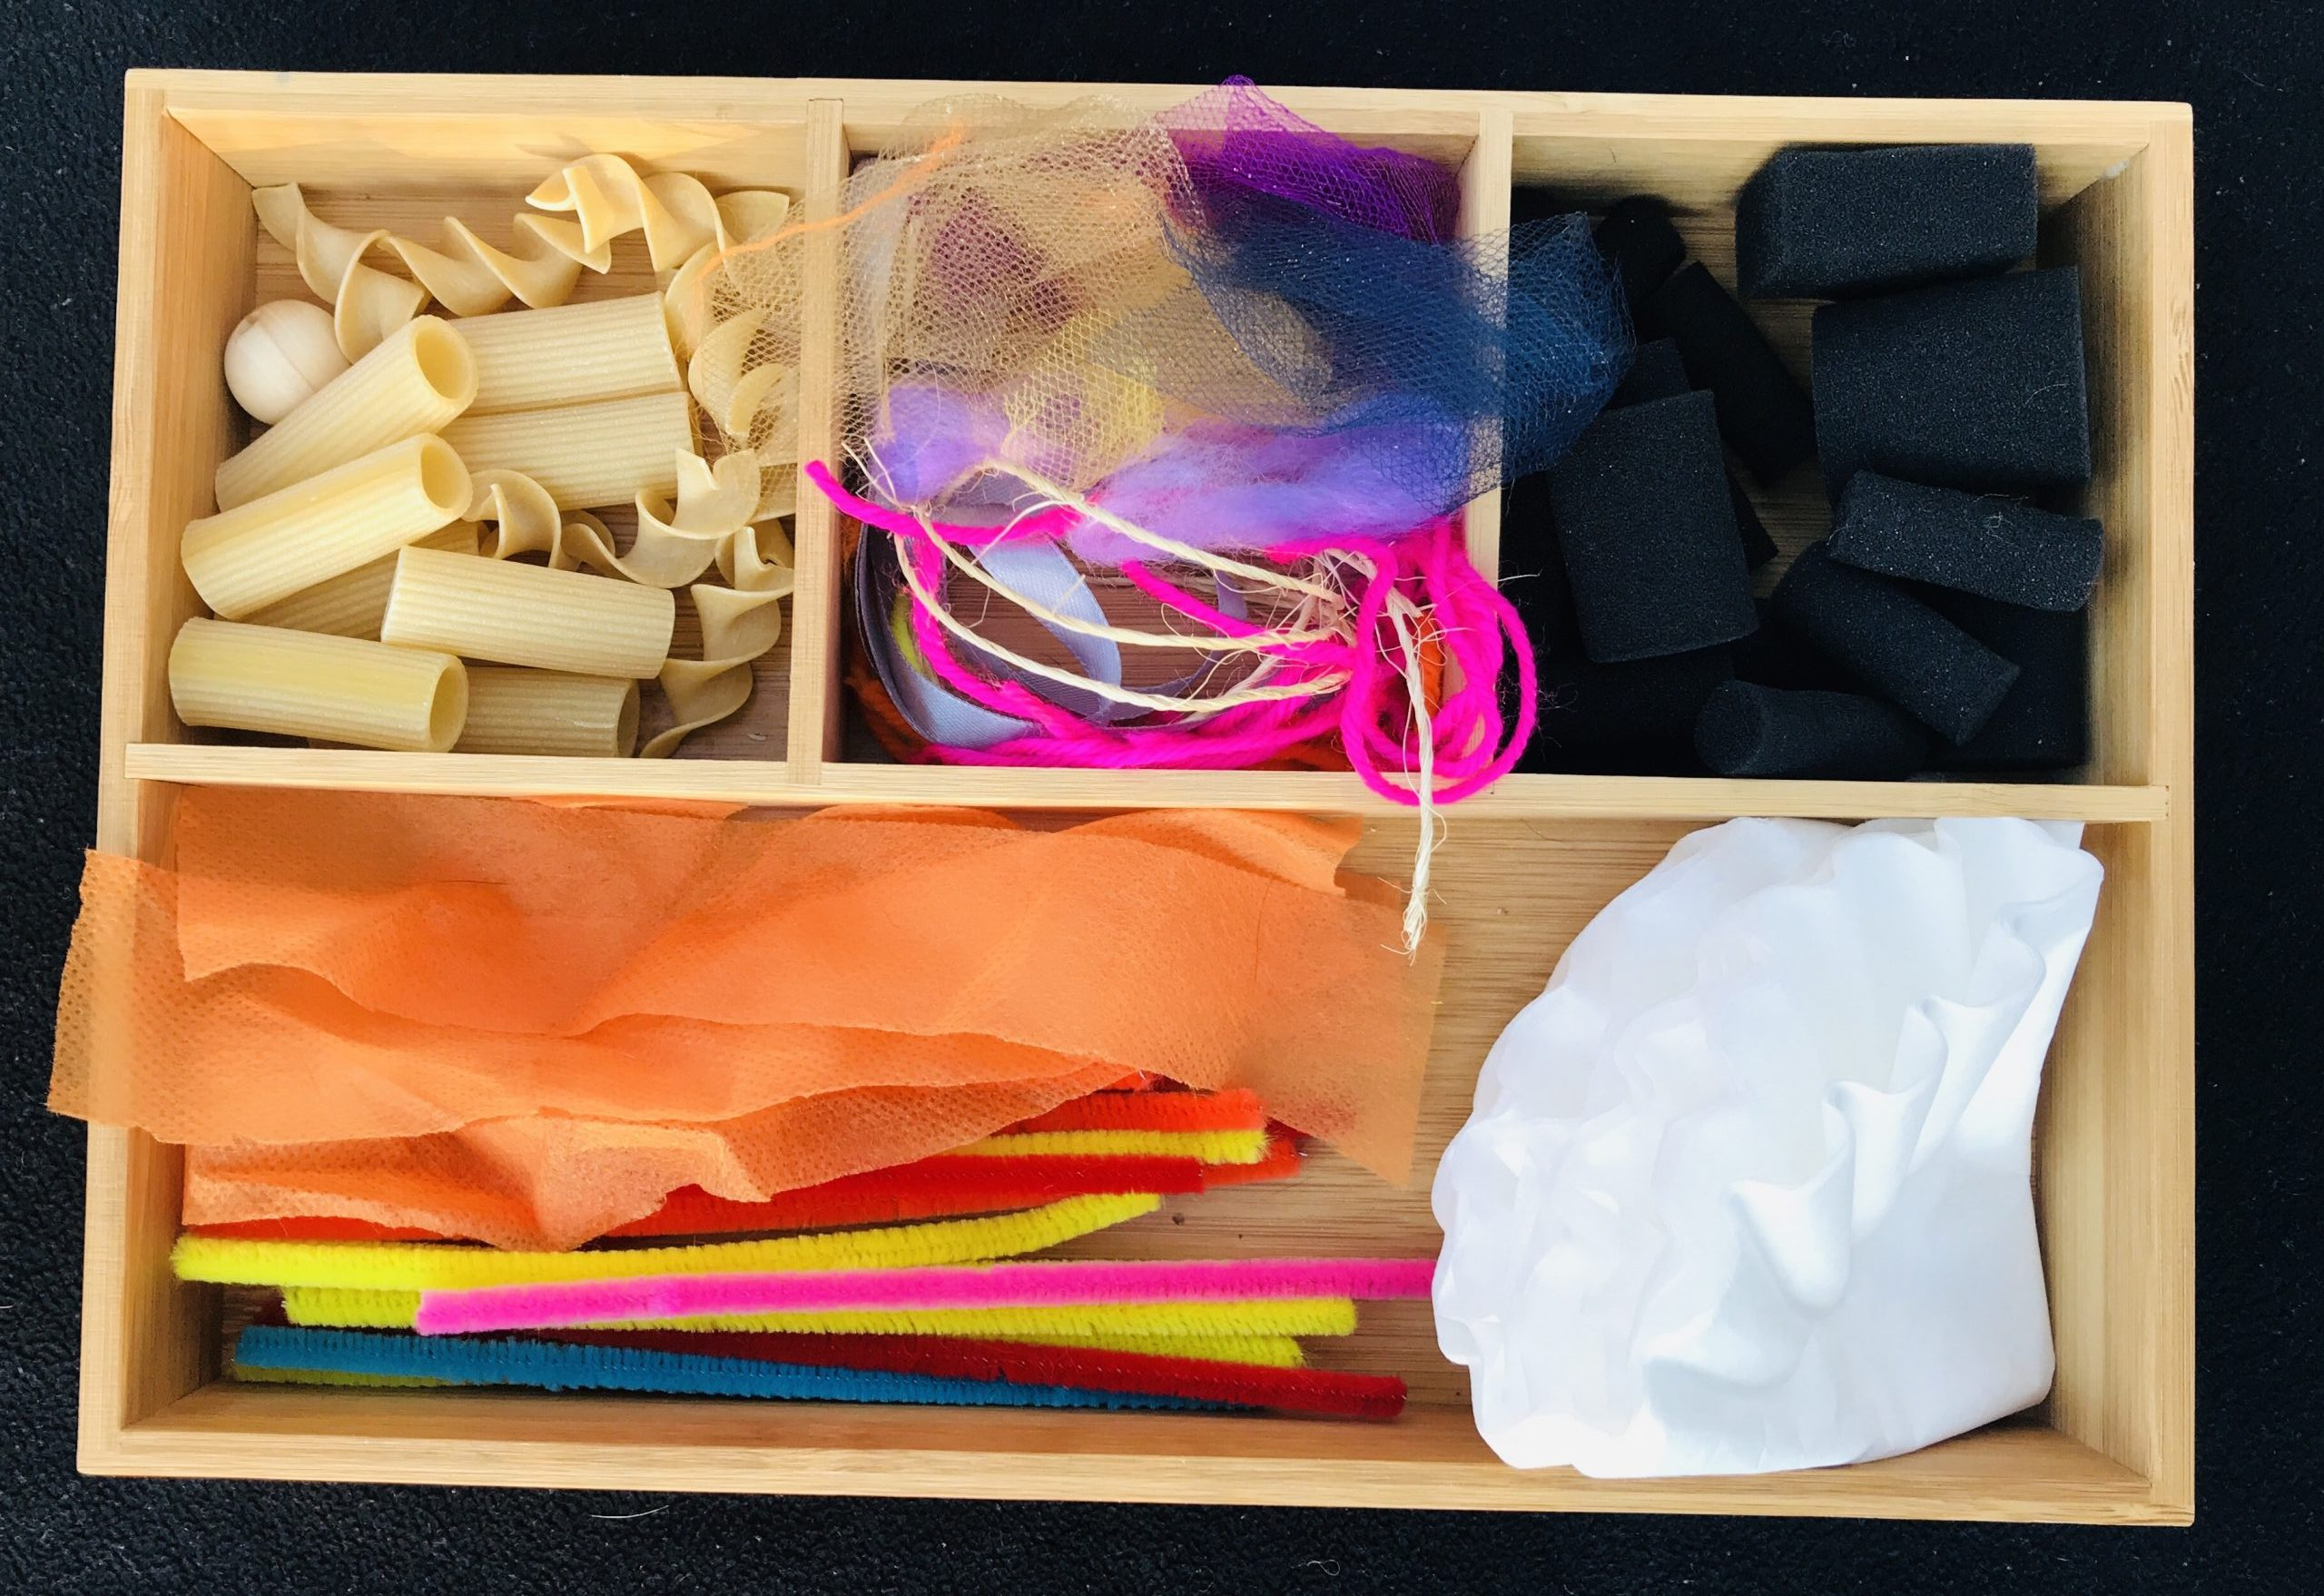 A divided wood tray with four compartments holds dry pasta, string, black foam pieces, pipe cleaners and coffee filters.